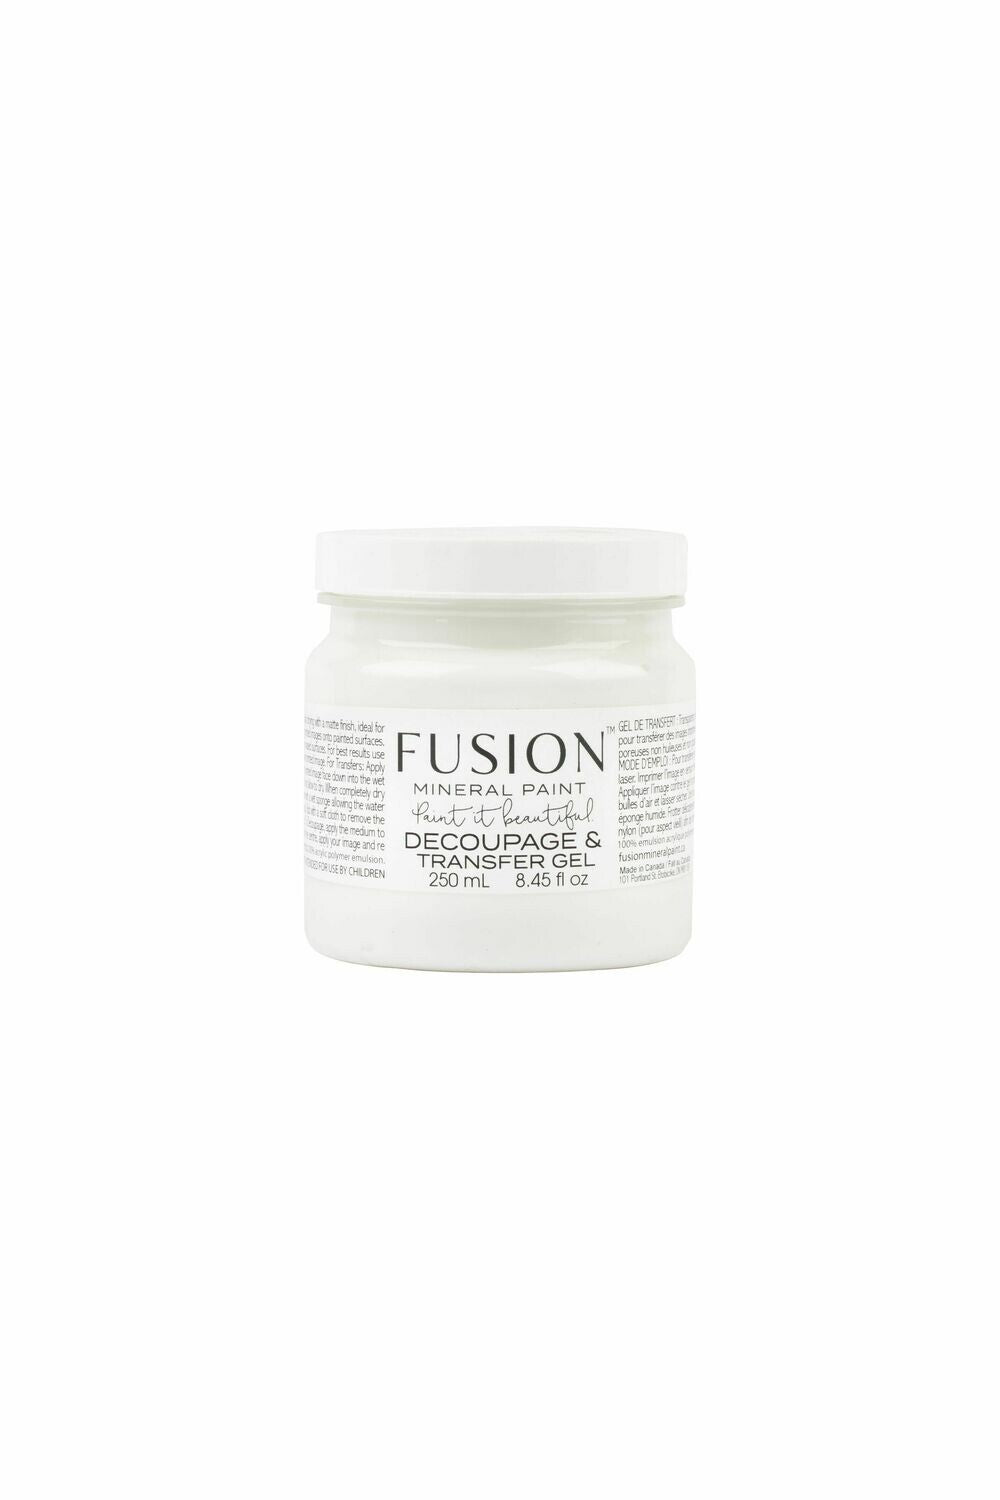 Fusion Mineral Paint Decoupage & Transfer Gel 250 ml